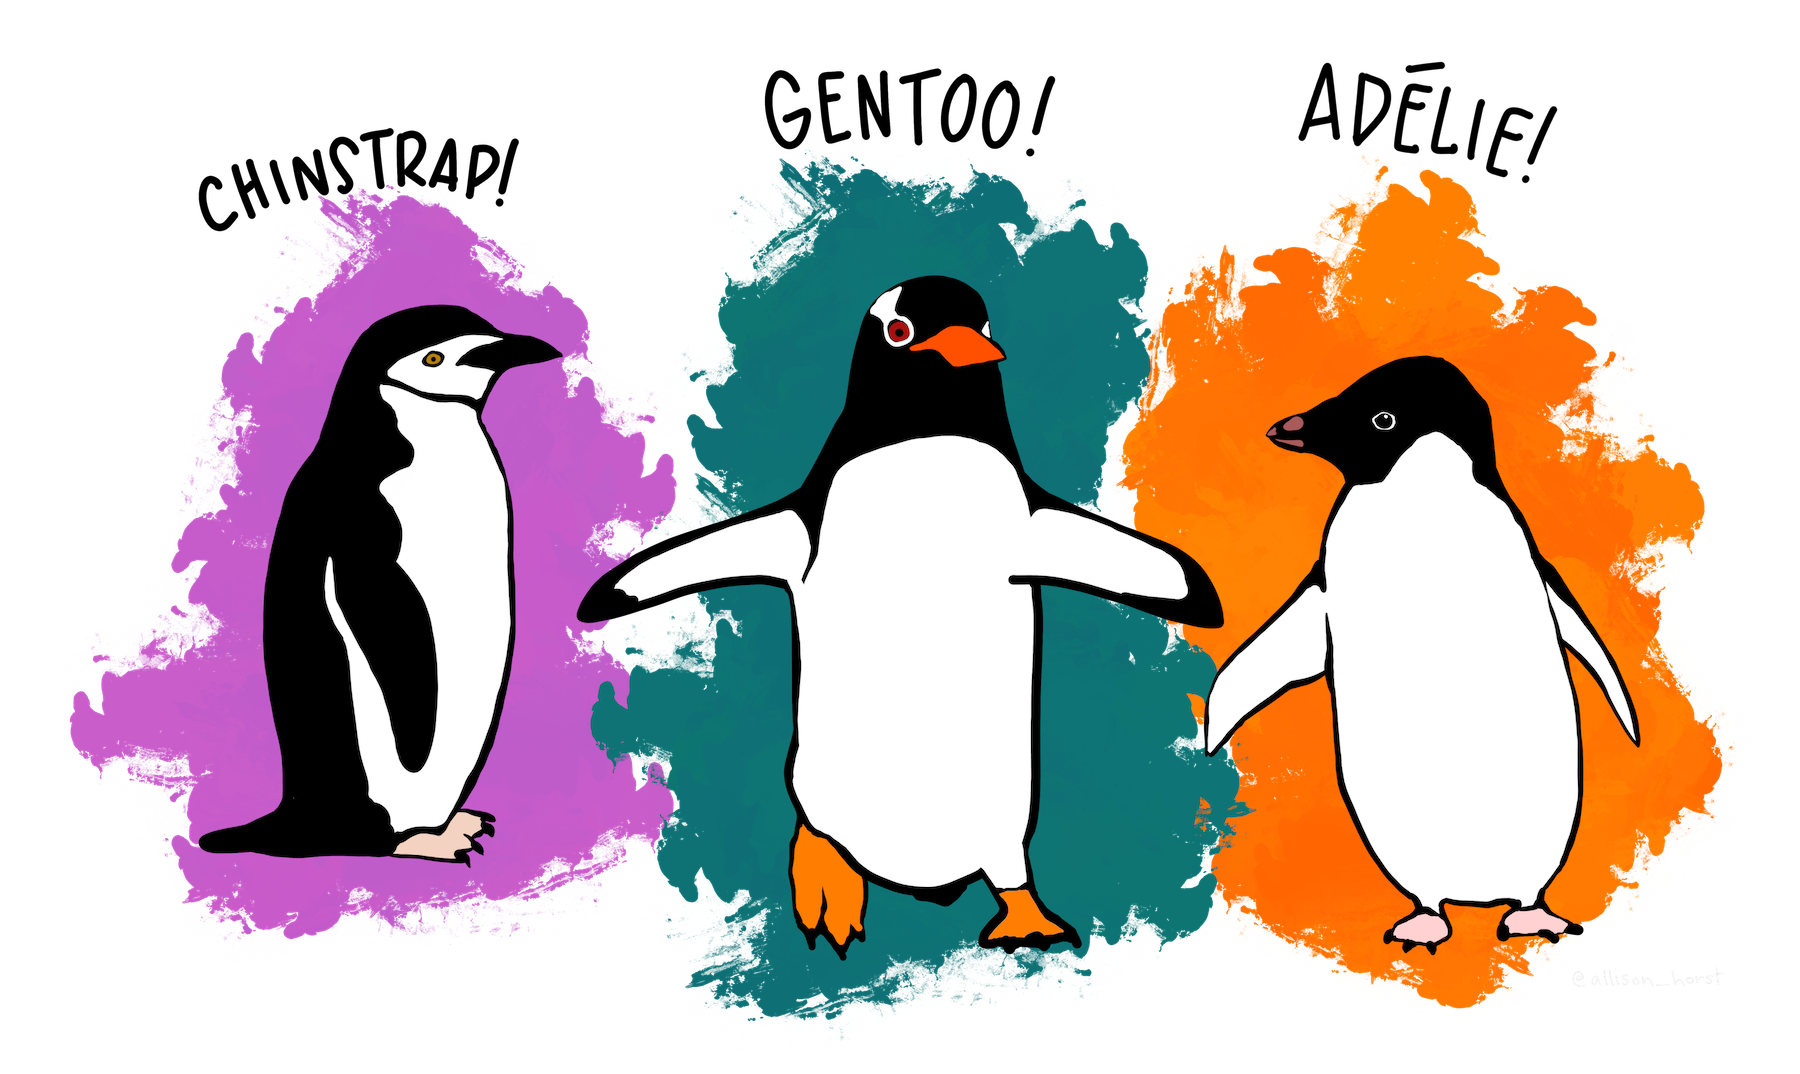 Allison Horst illustration of 3 penguin species